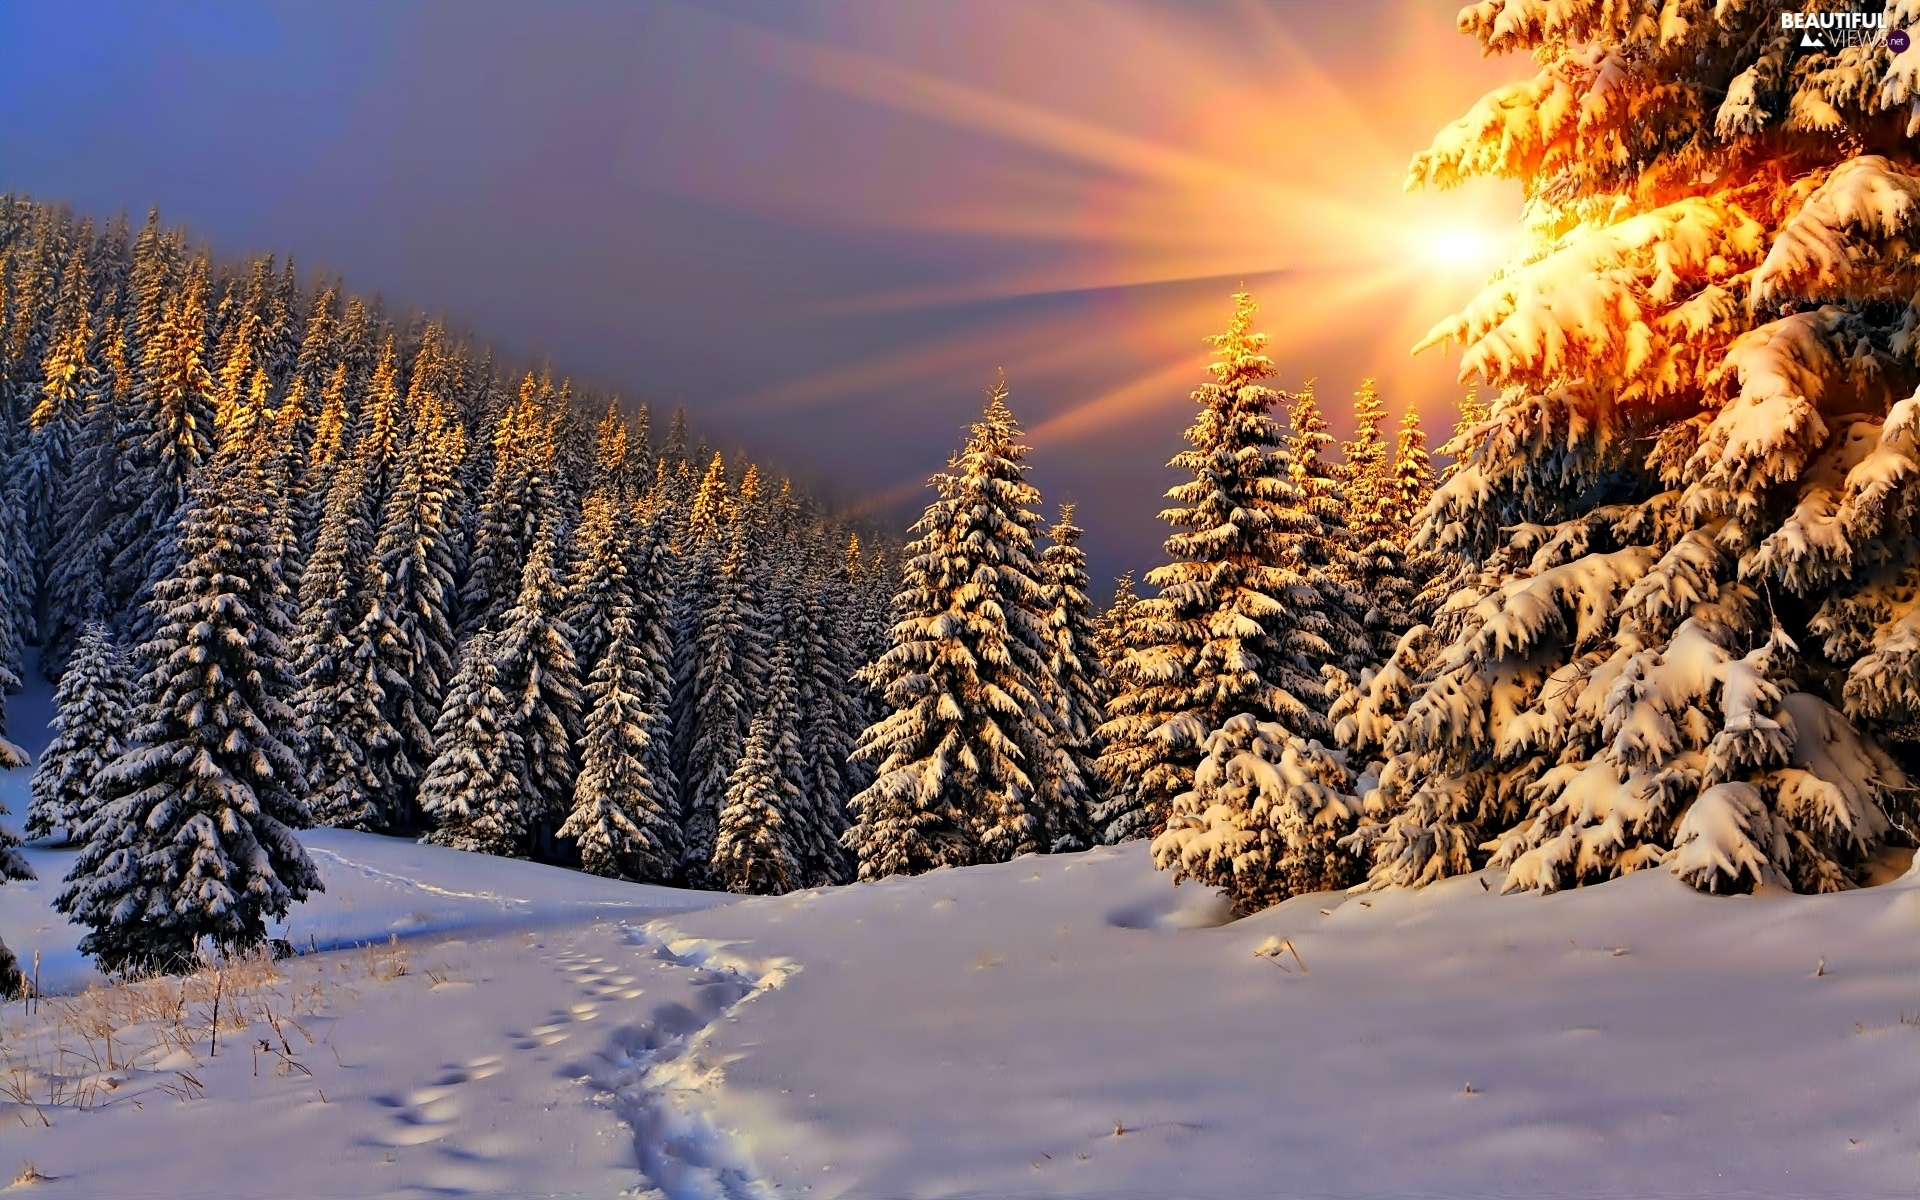 Beautiful Snowflake In The Sunlight: Forest, Spruces, Traces, Rays, Glamour, Snow, Winter, Sun